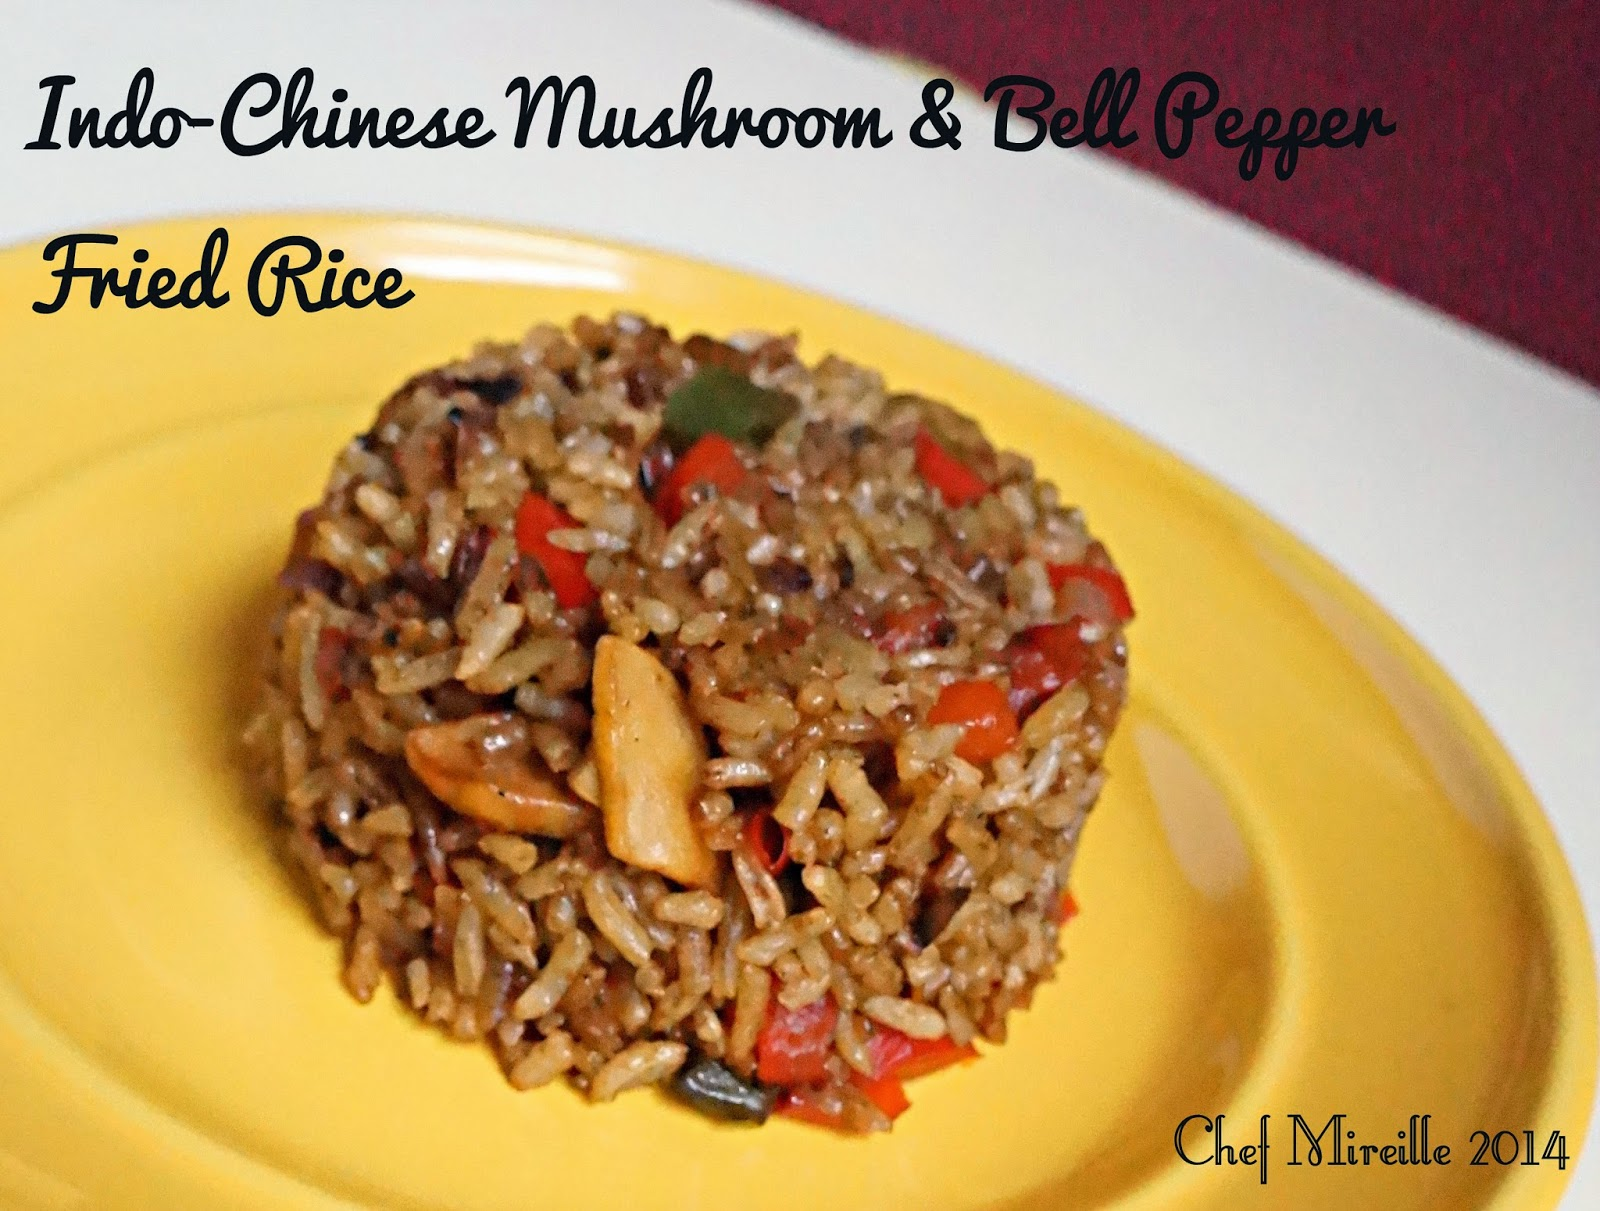 Indo-Chinese Mushroom & Bell Pepper Fried Rice